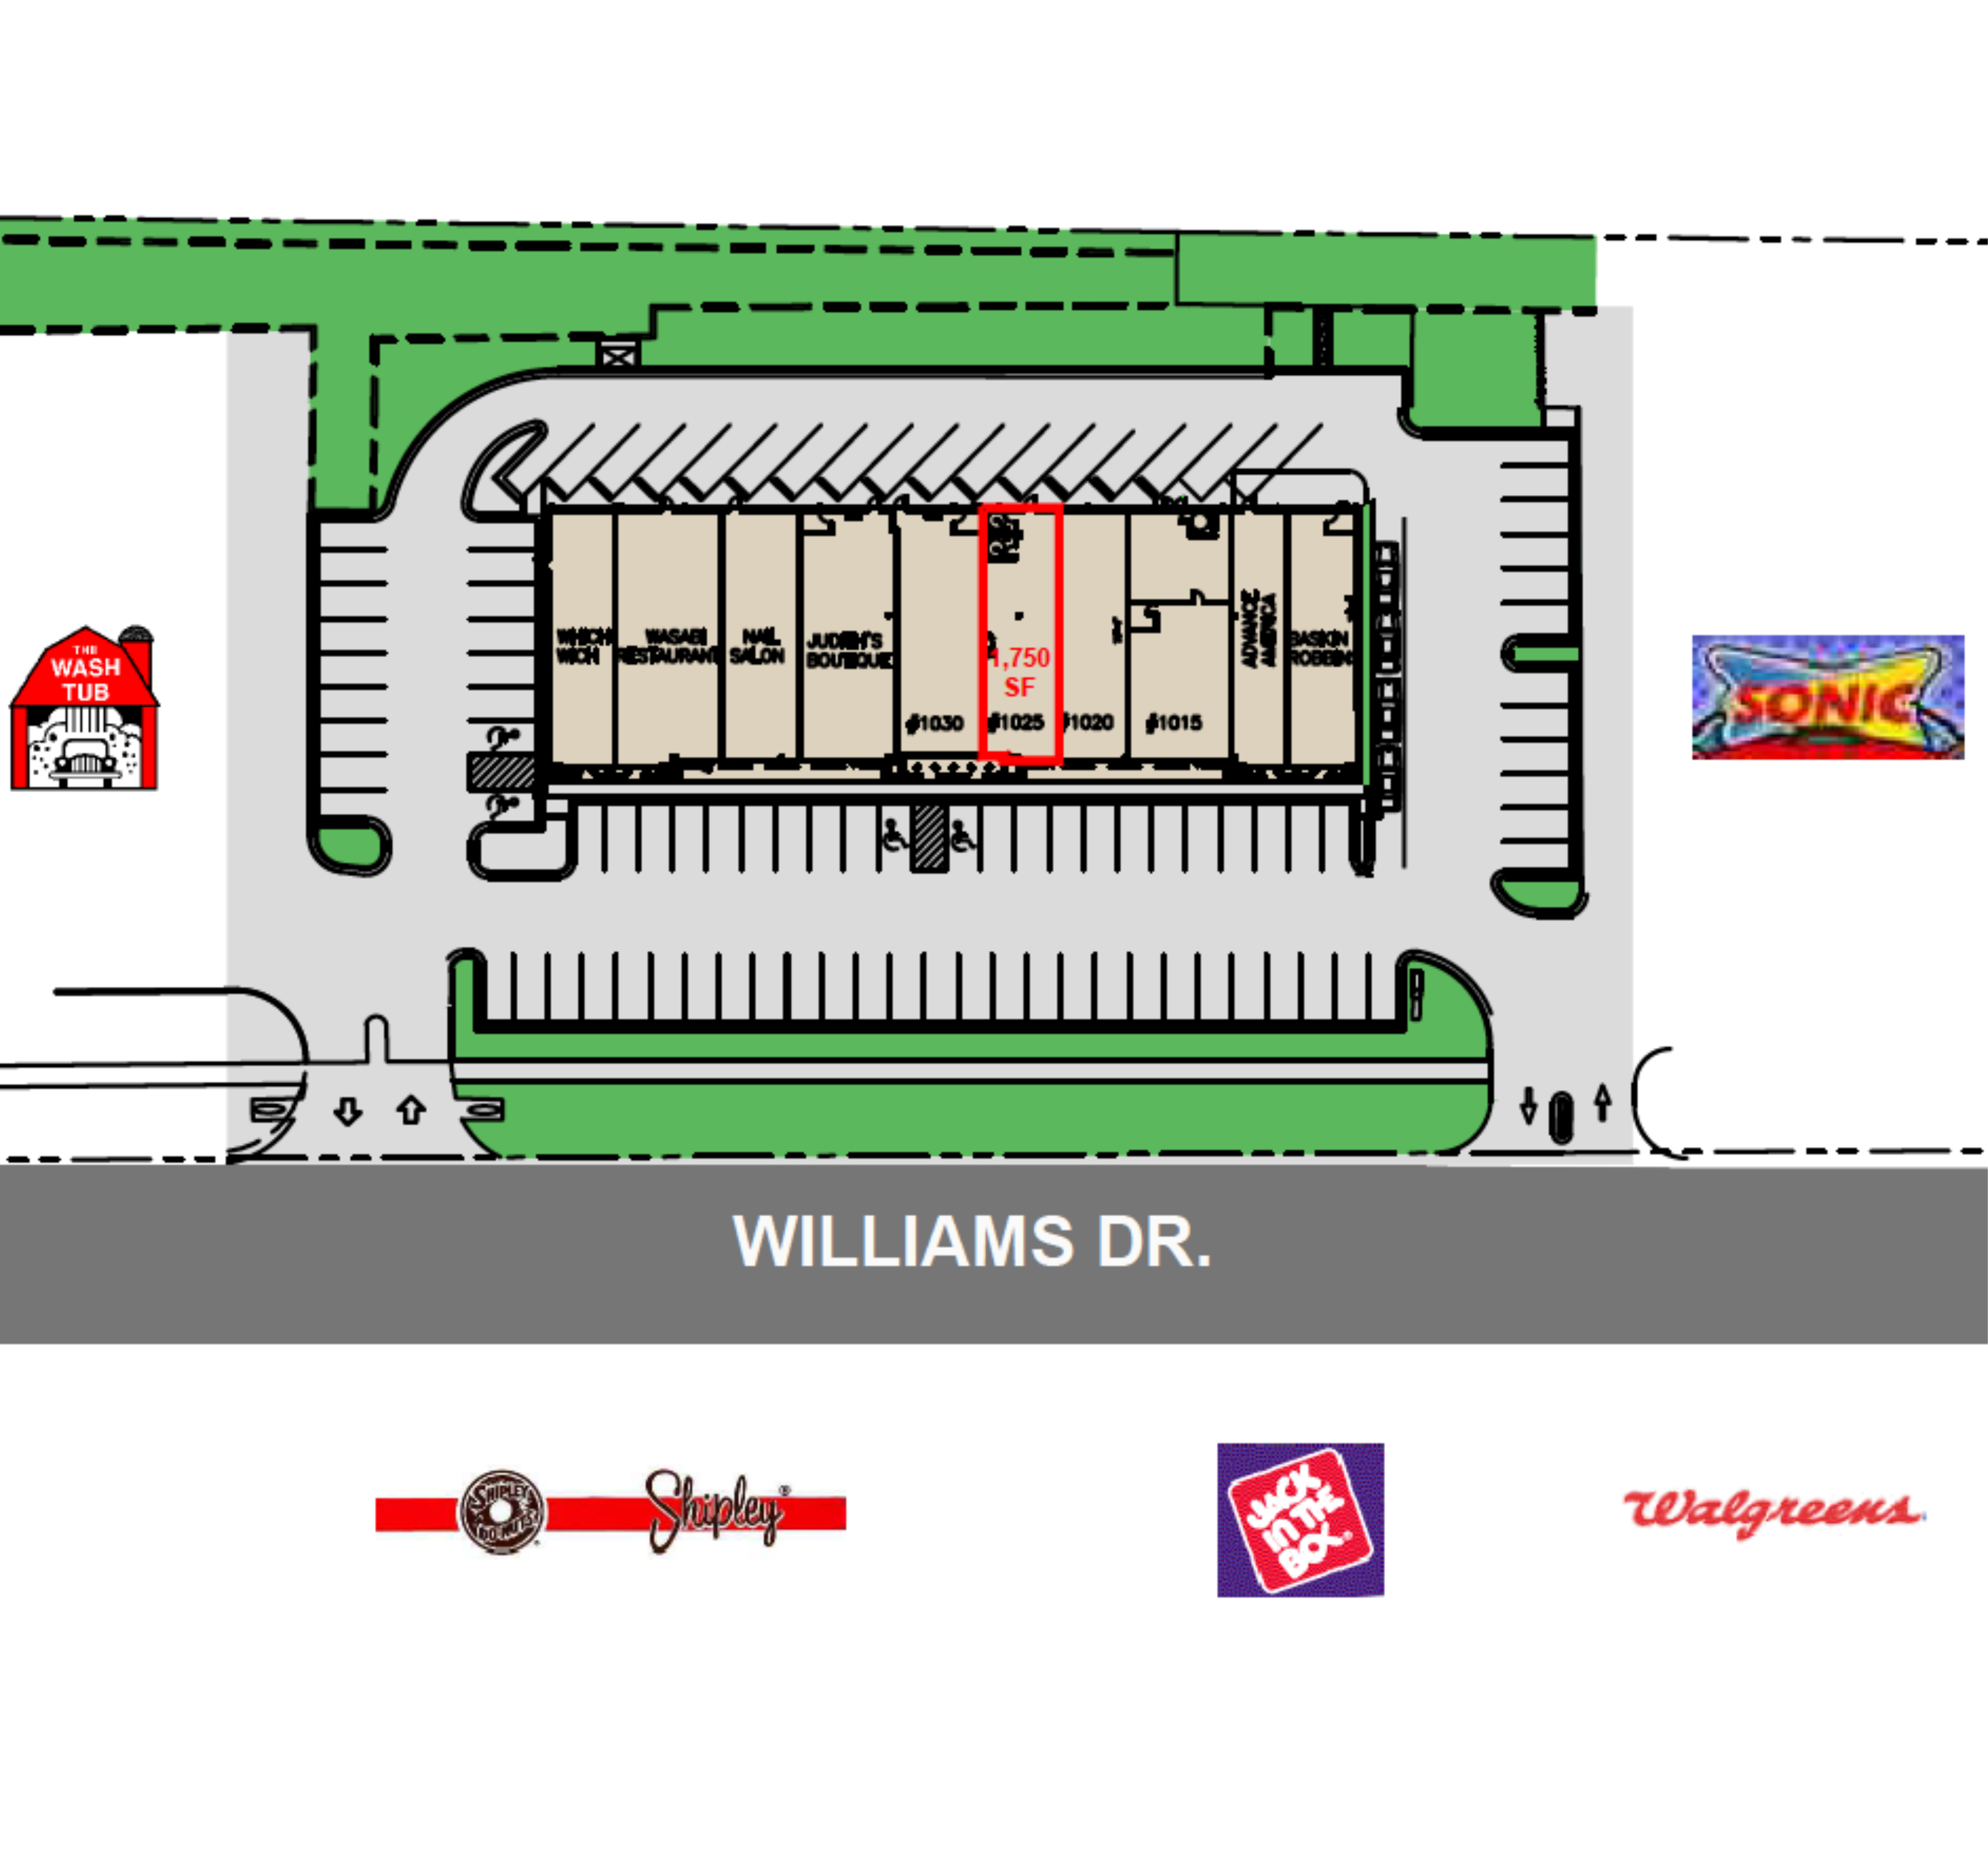 Booty's Crossing Center: site plan